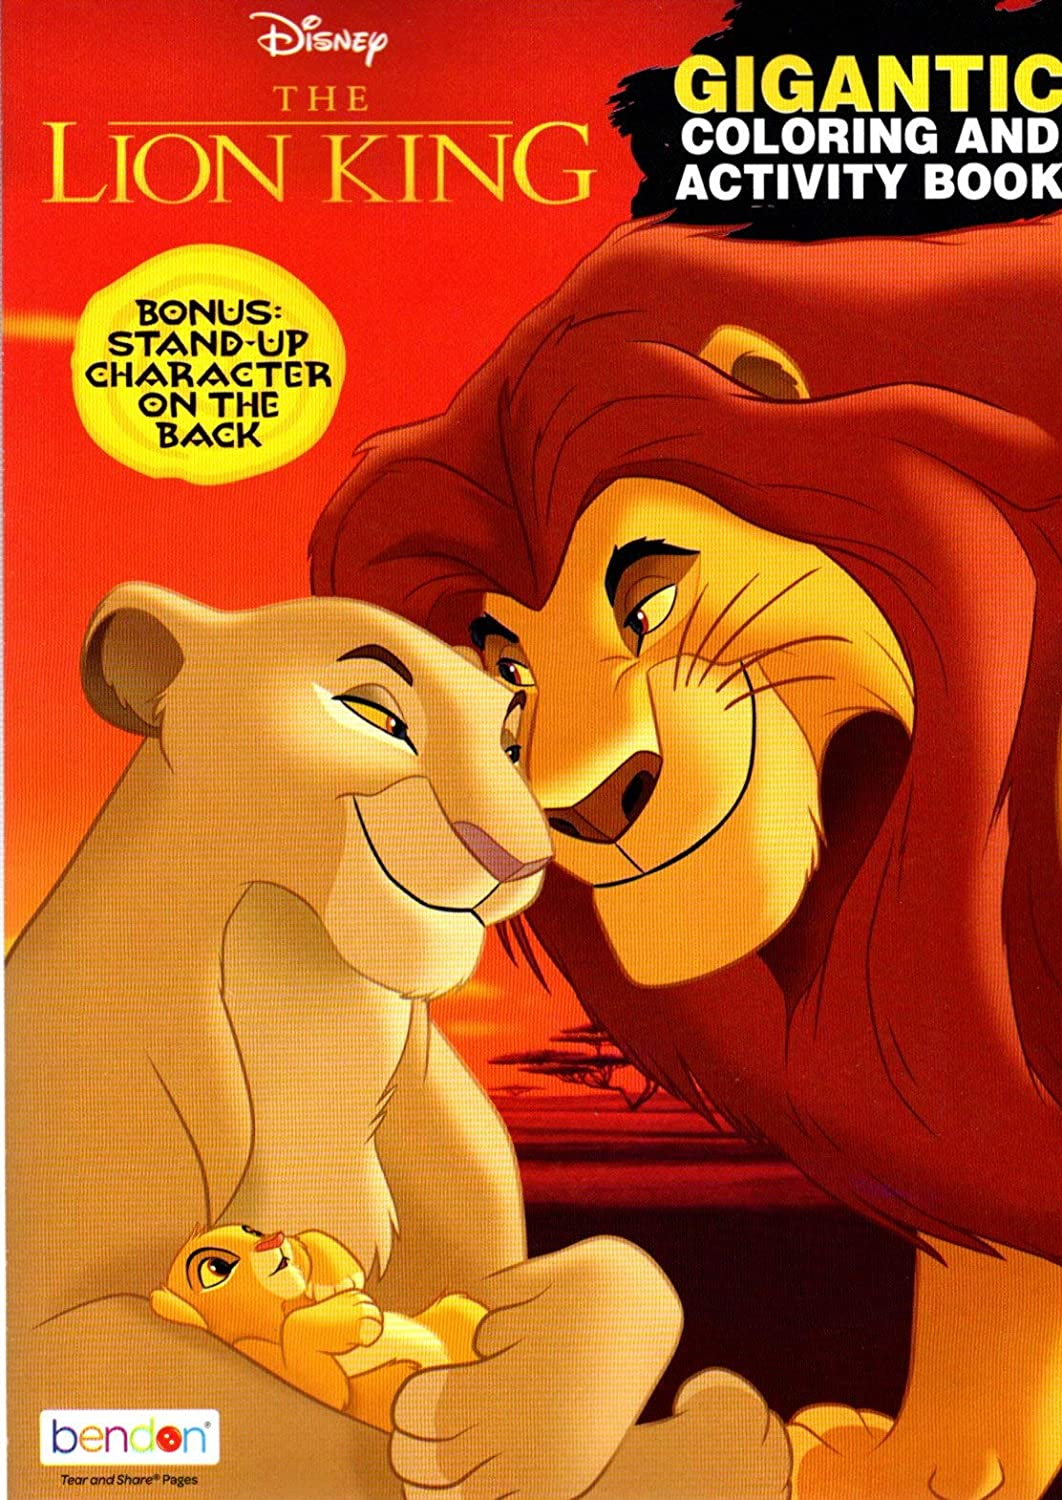 - Amazon.com: Disney - The Lion King - Gigantic Coloring & Activity